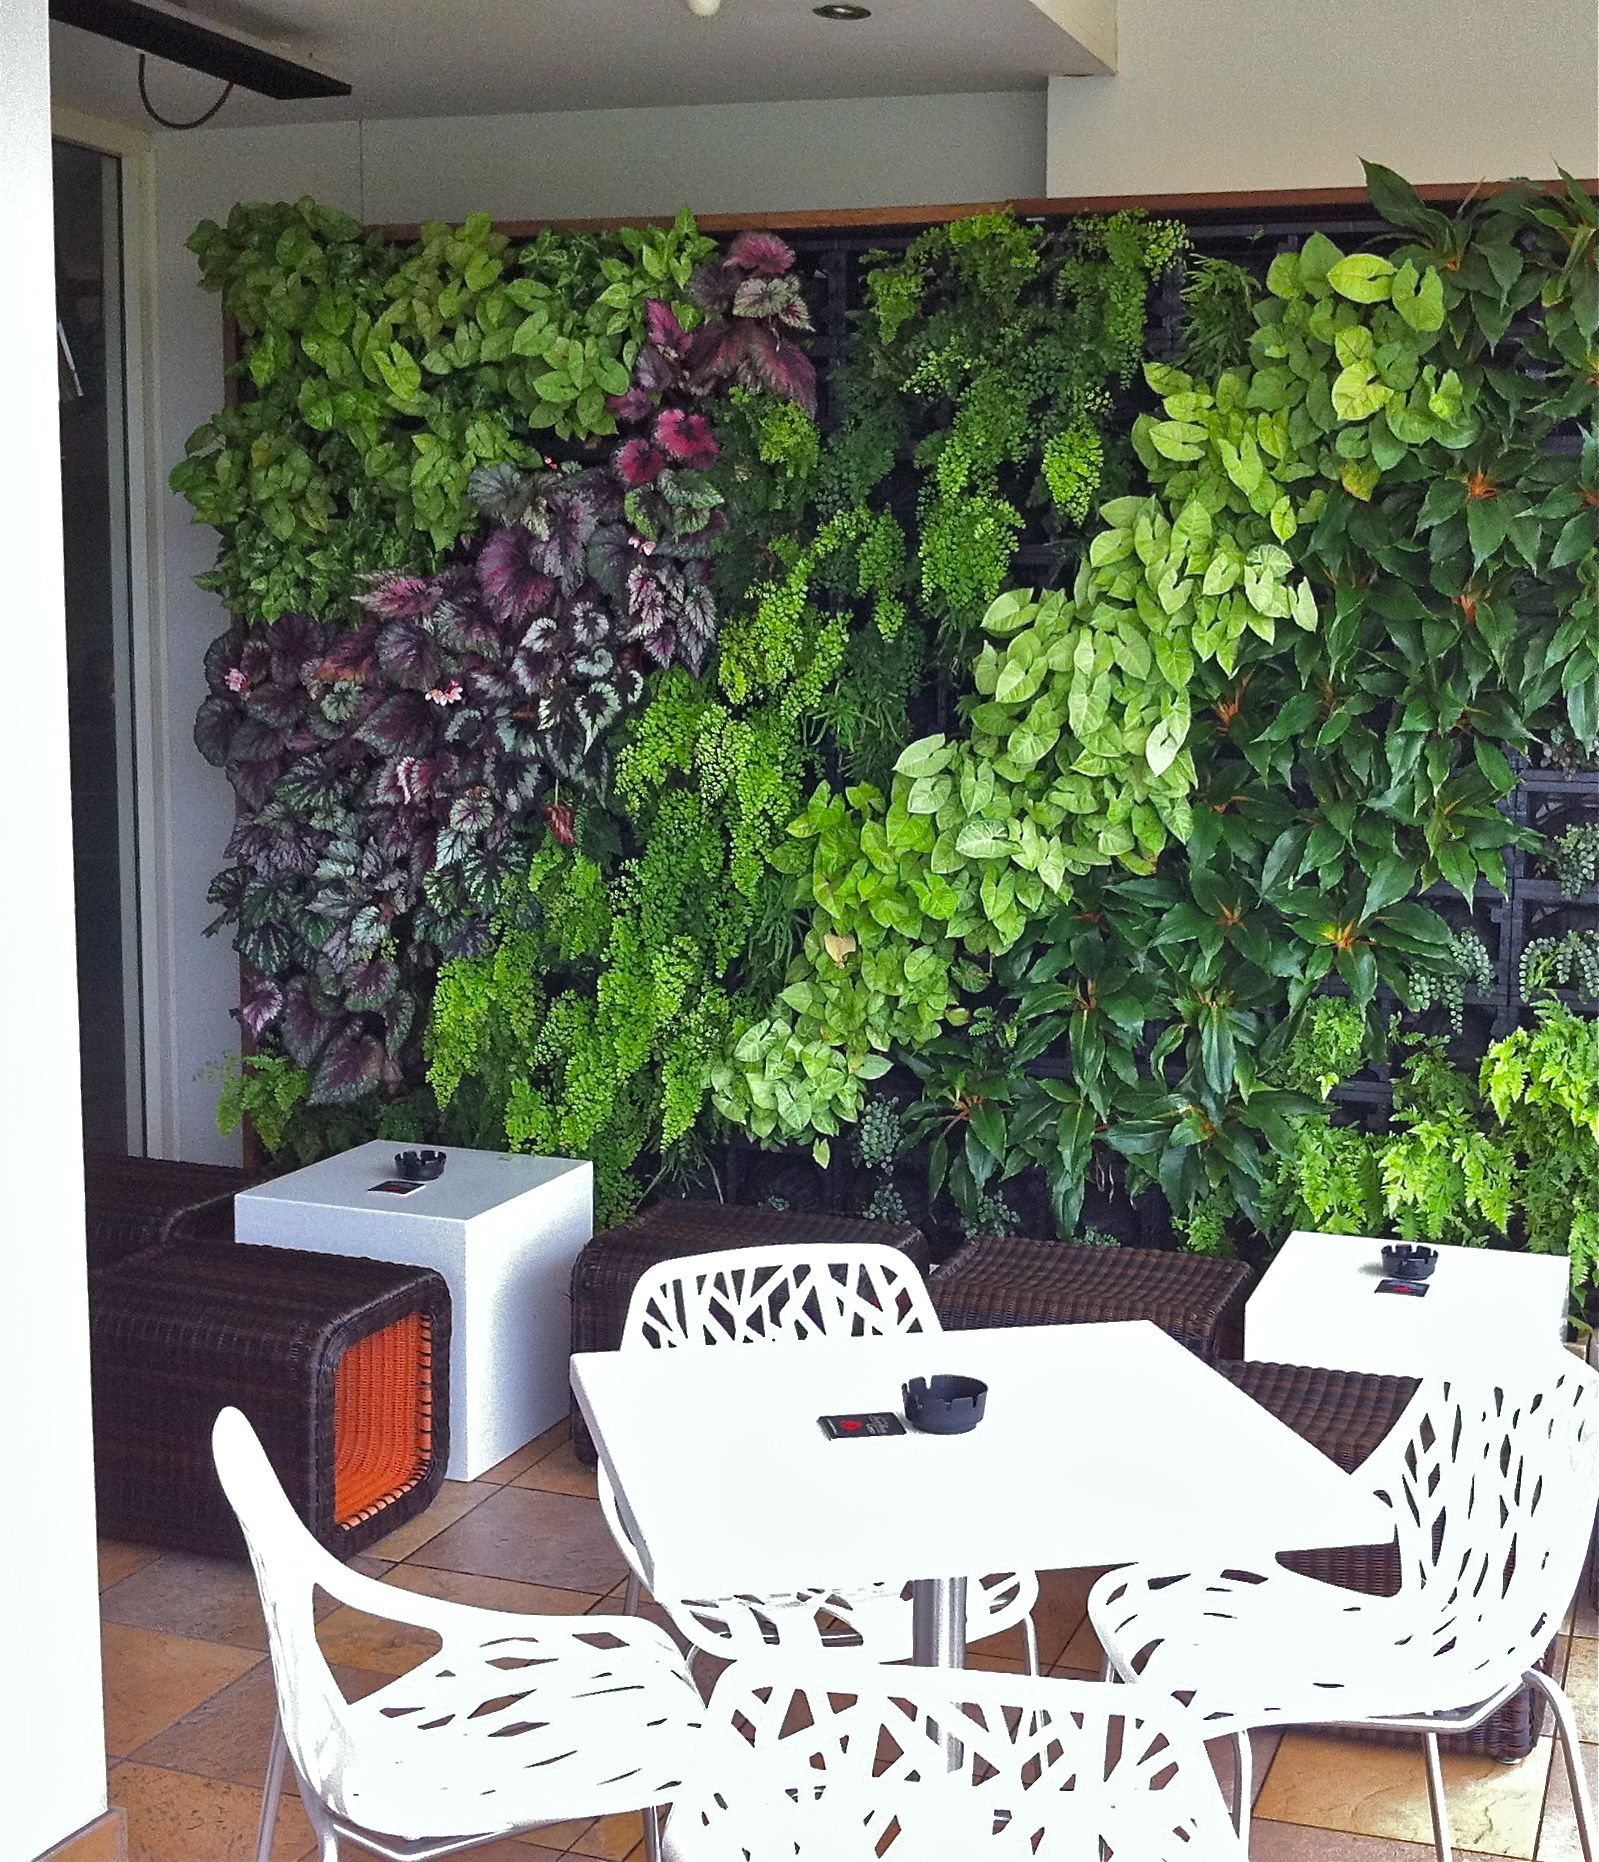 green wall garden green roof garden vertical garden design sydney growing well